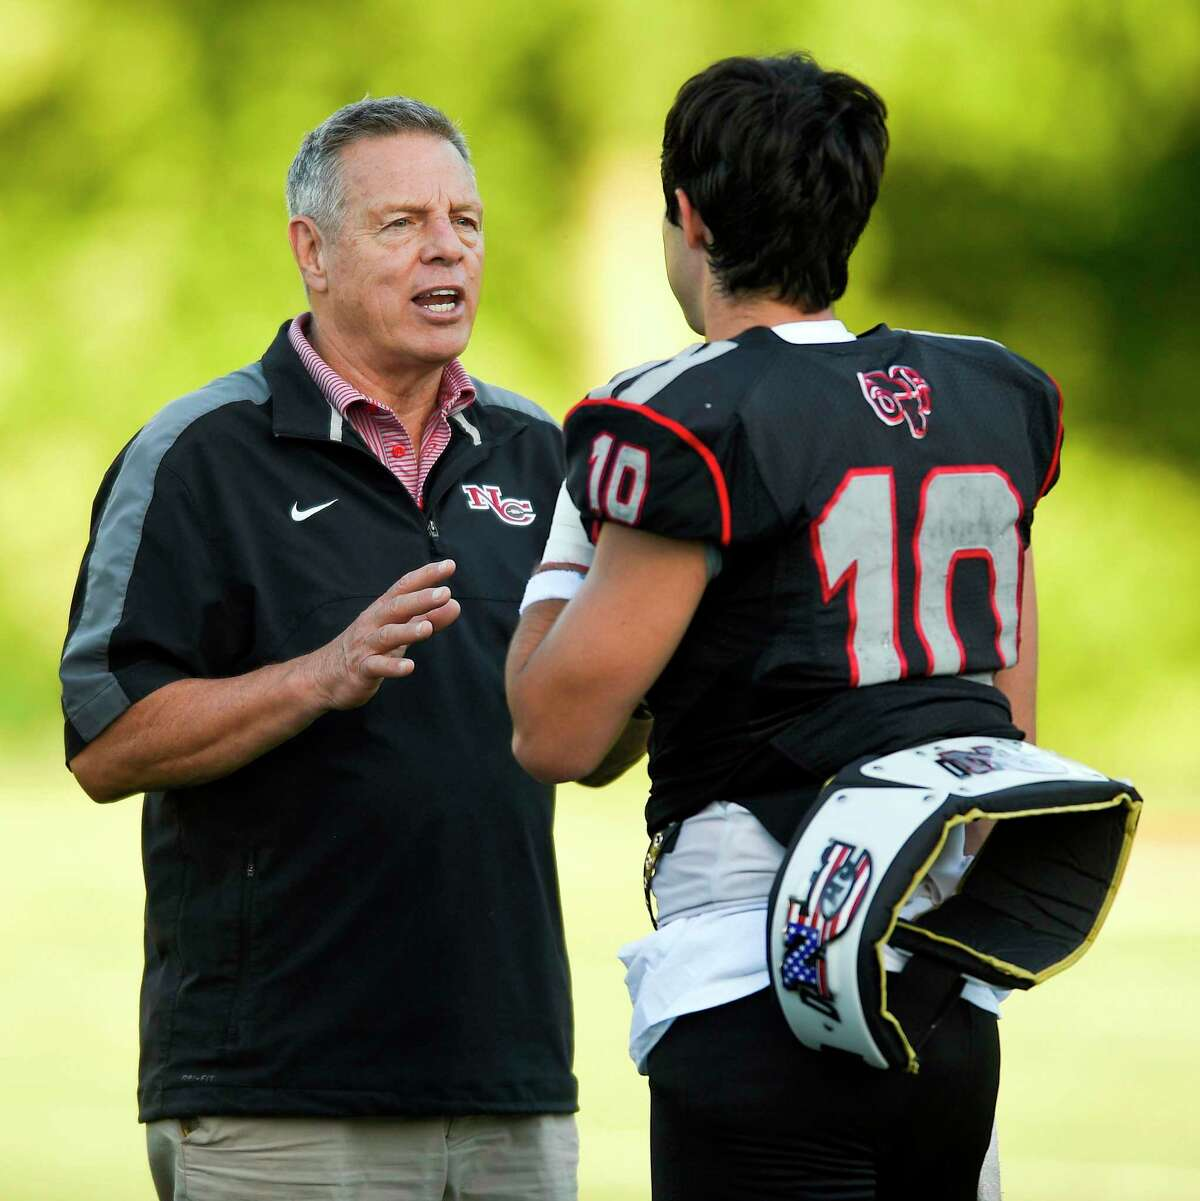 New Canaan coach Lou Marinelli chats with quarterback Drew Pyne during the 11th Annual Brian Wilderman Memorial Red and White football game at Dunning Stadium in New Canaan on June 15, 2018.